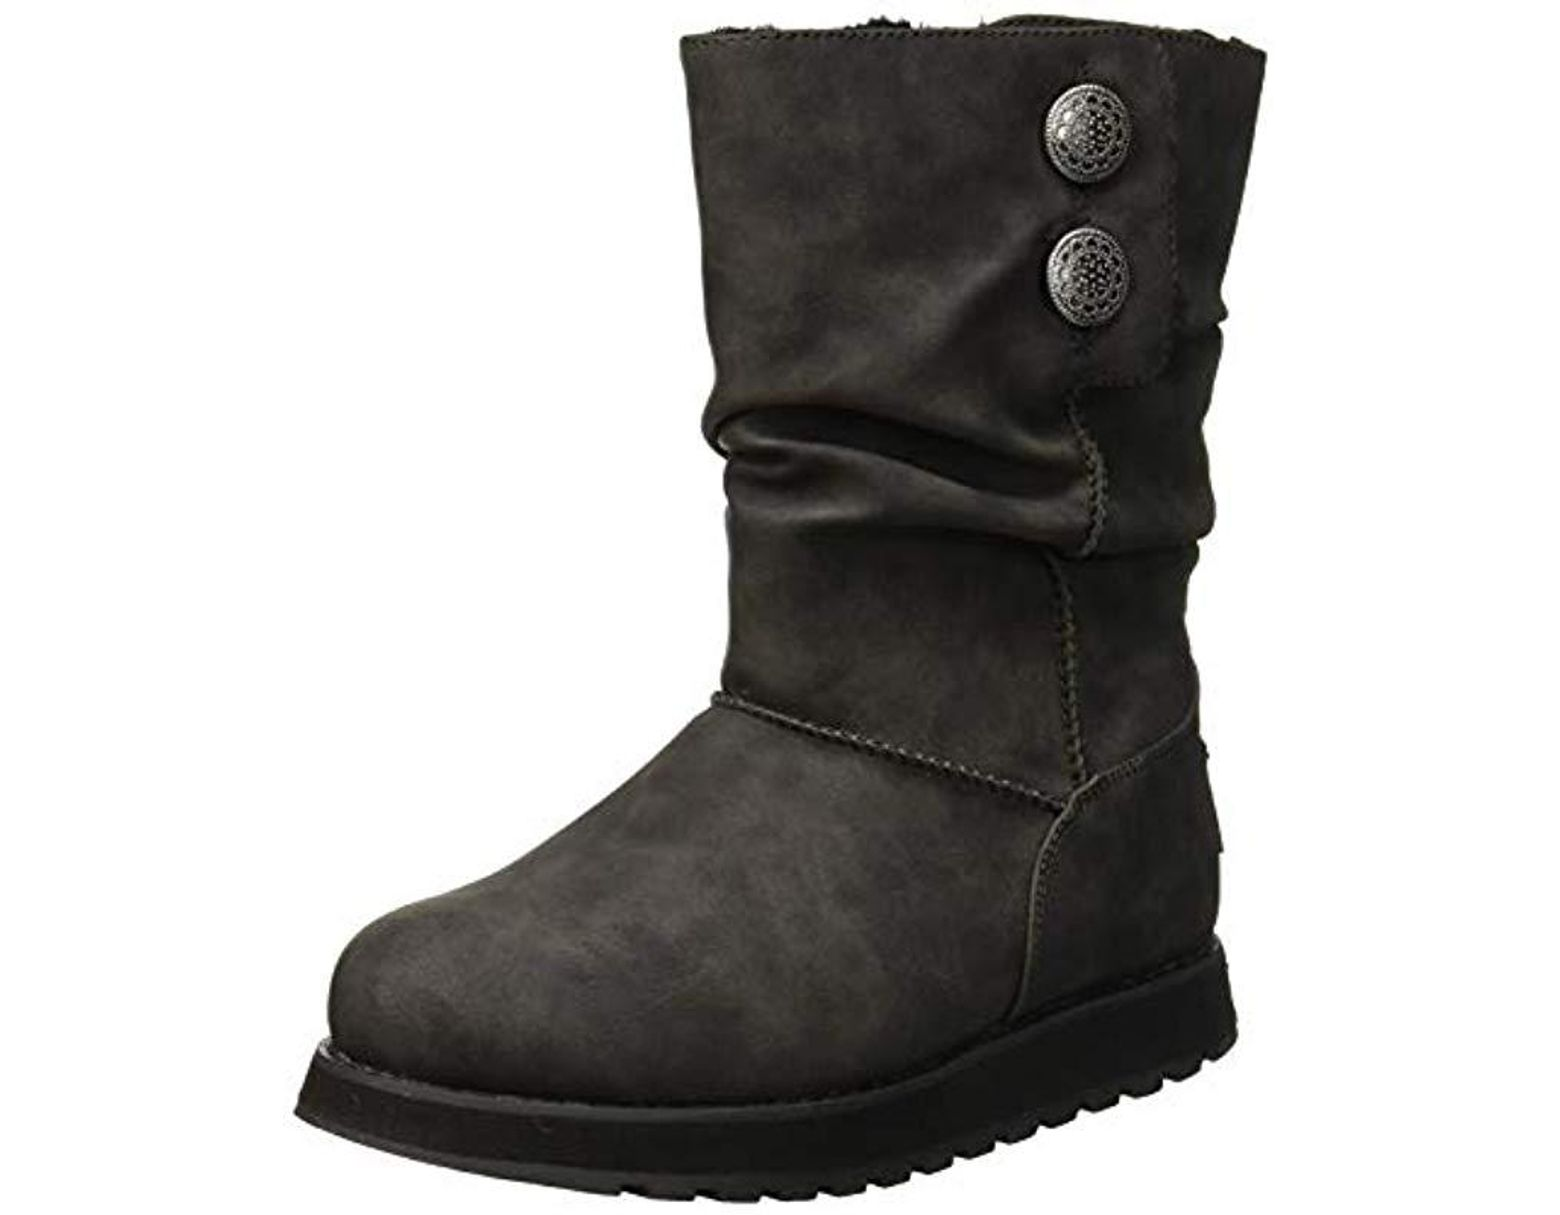 e287e596a37 Women's Black Keepsakes Leatherette Mid Button Winter Boot